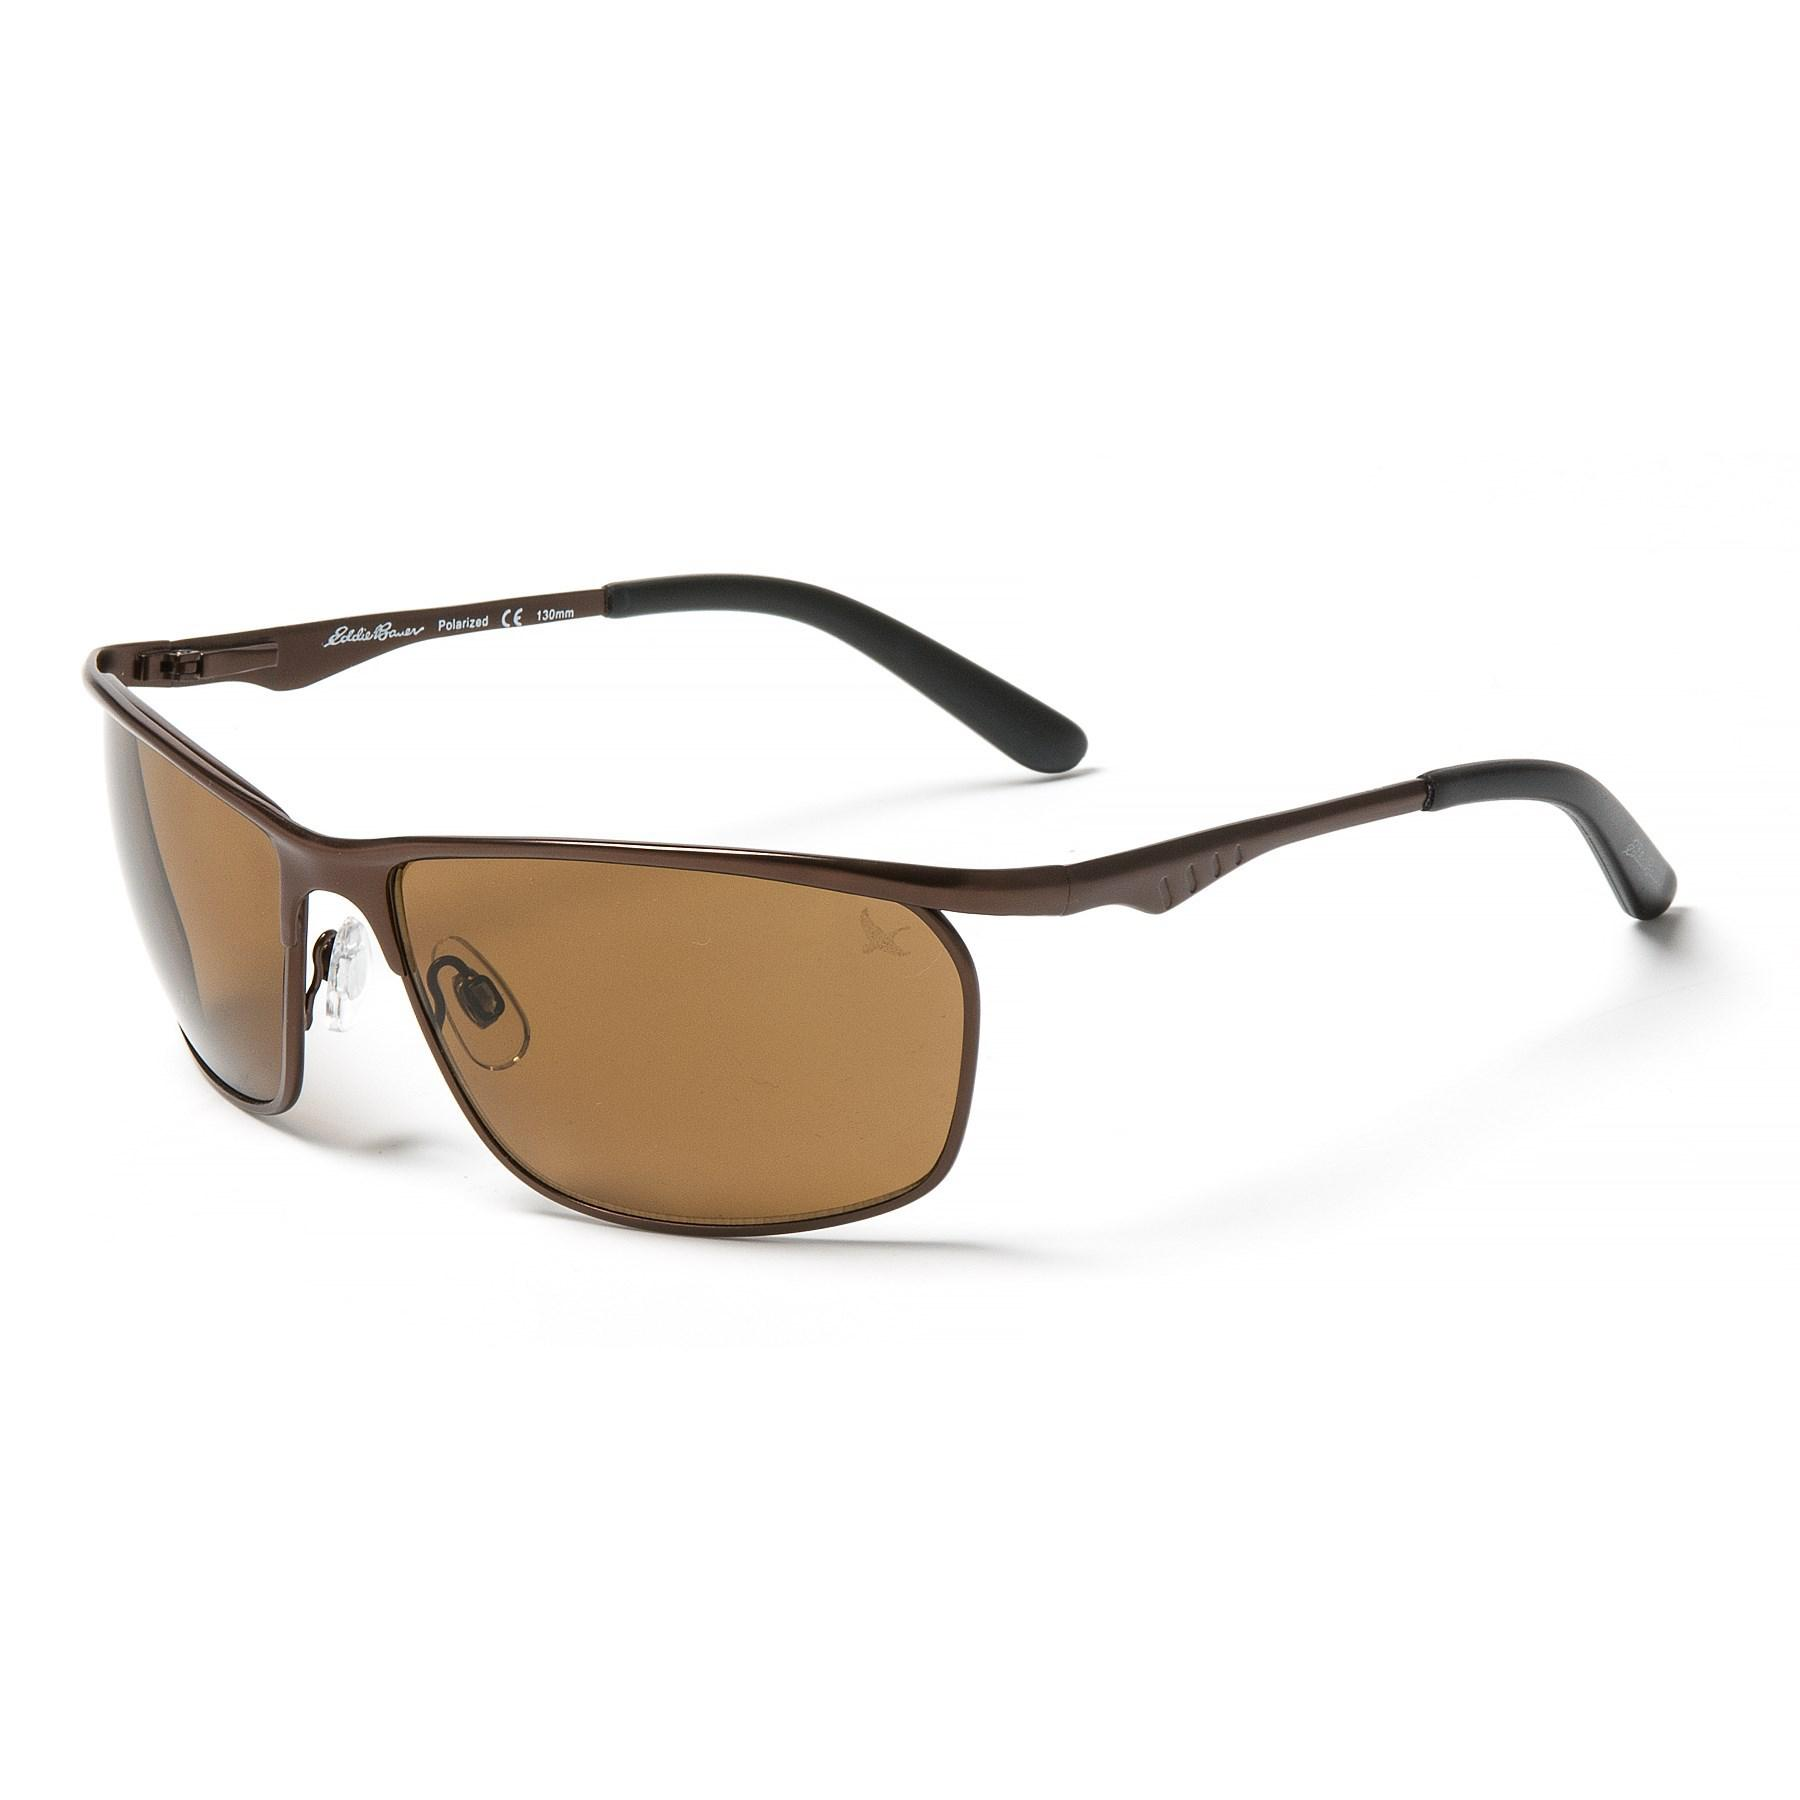 0c5d14eb6d1 Lyst - Eddie Bauer 62 Metal Shield Sunglasses in Brown for Men